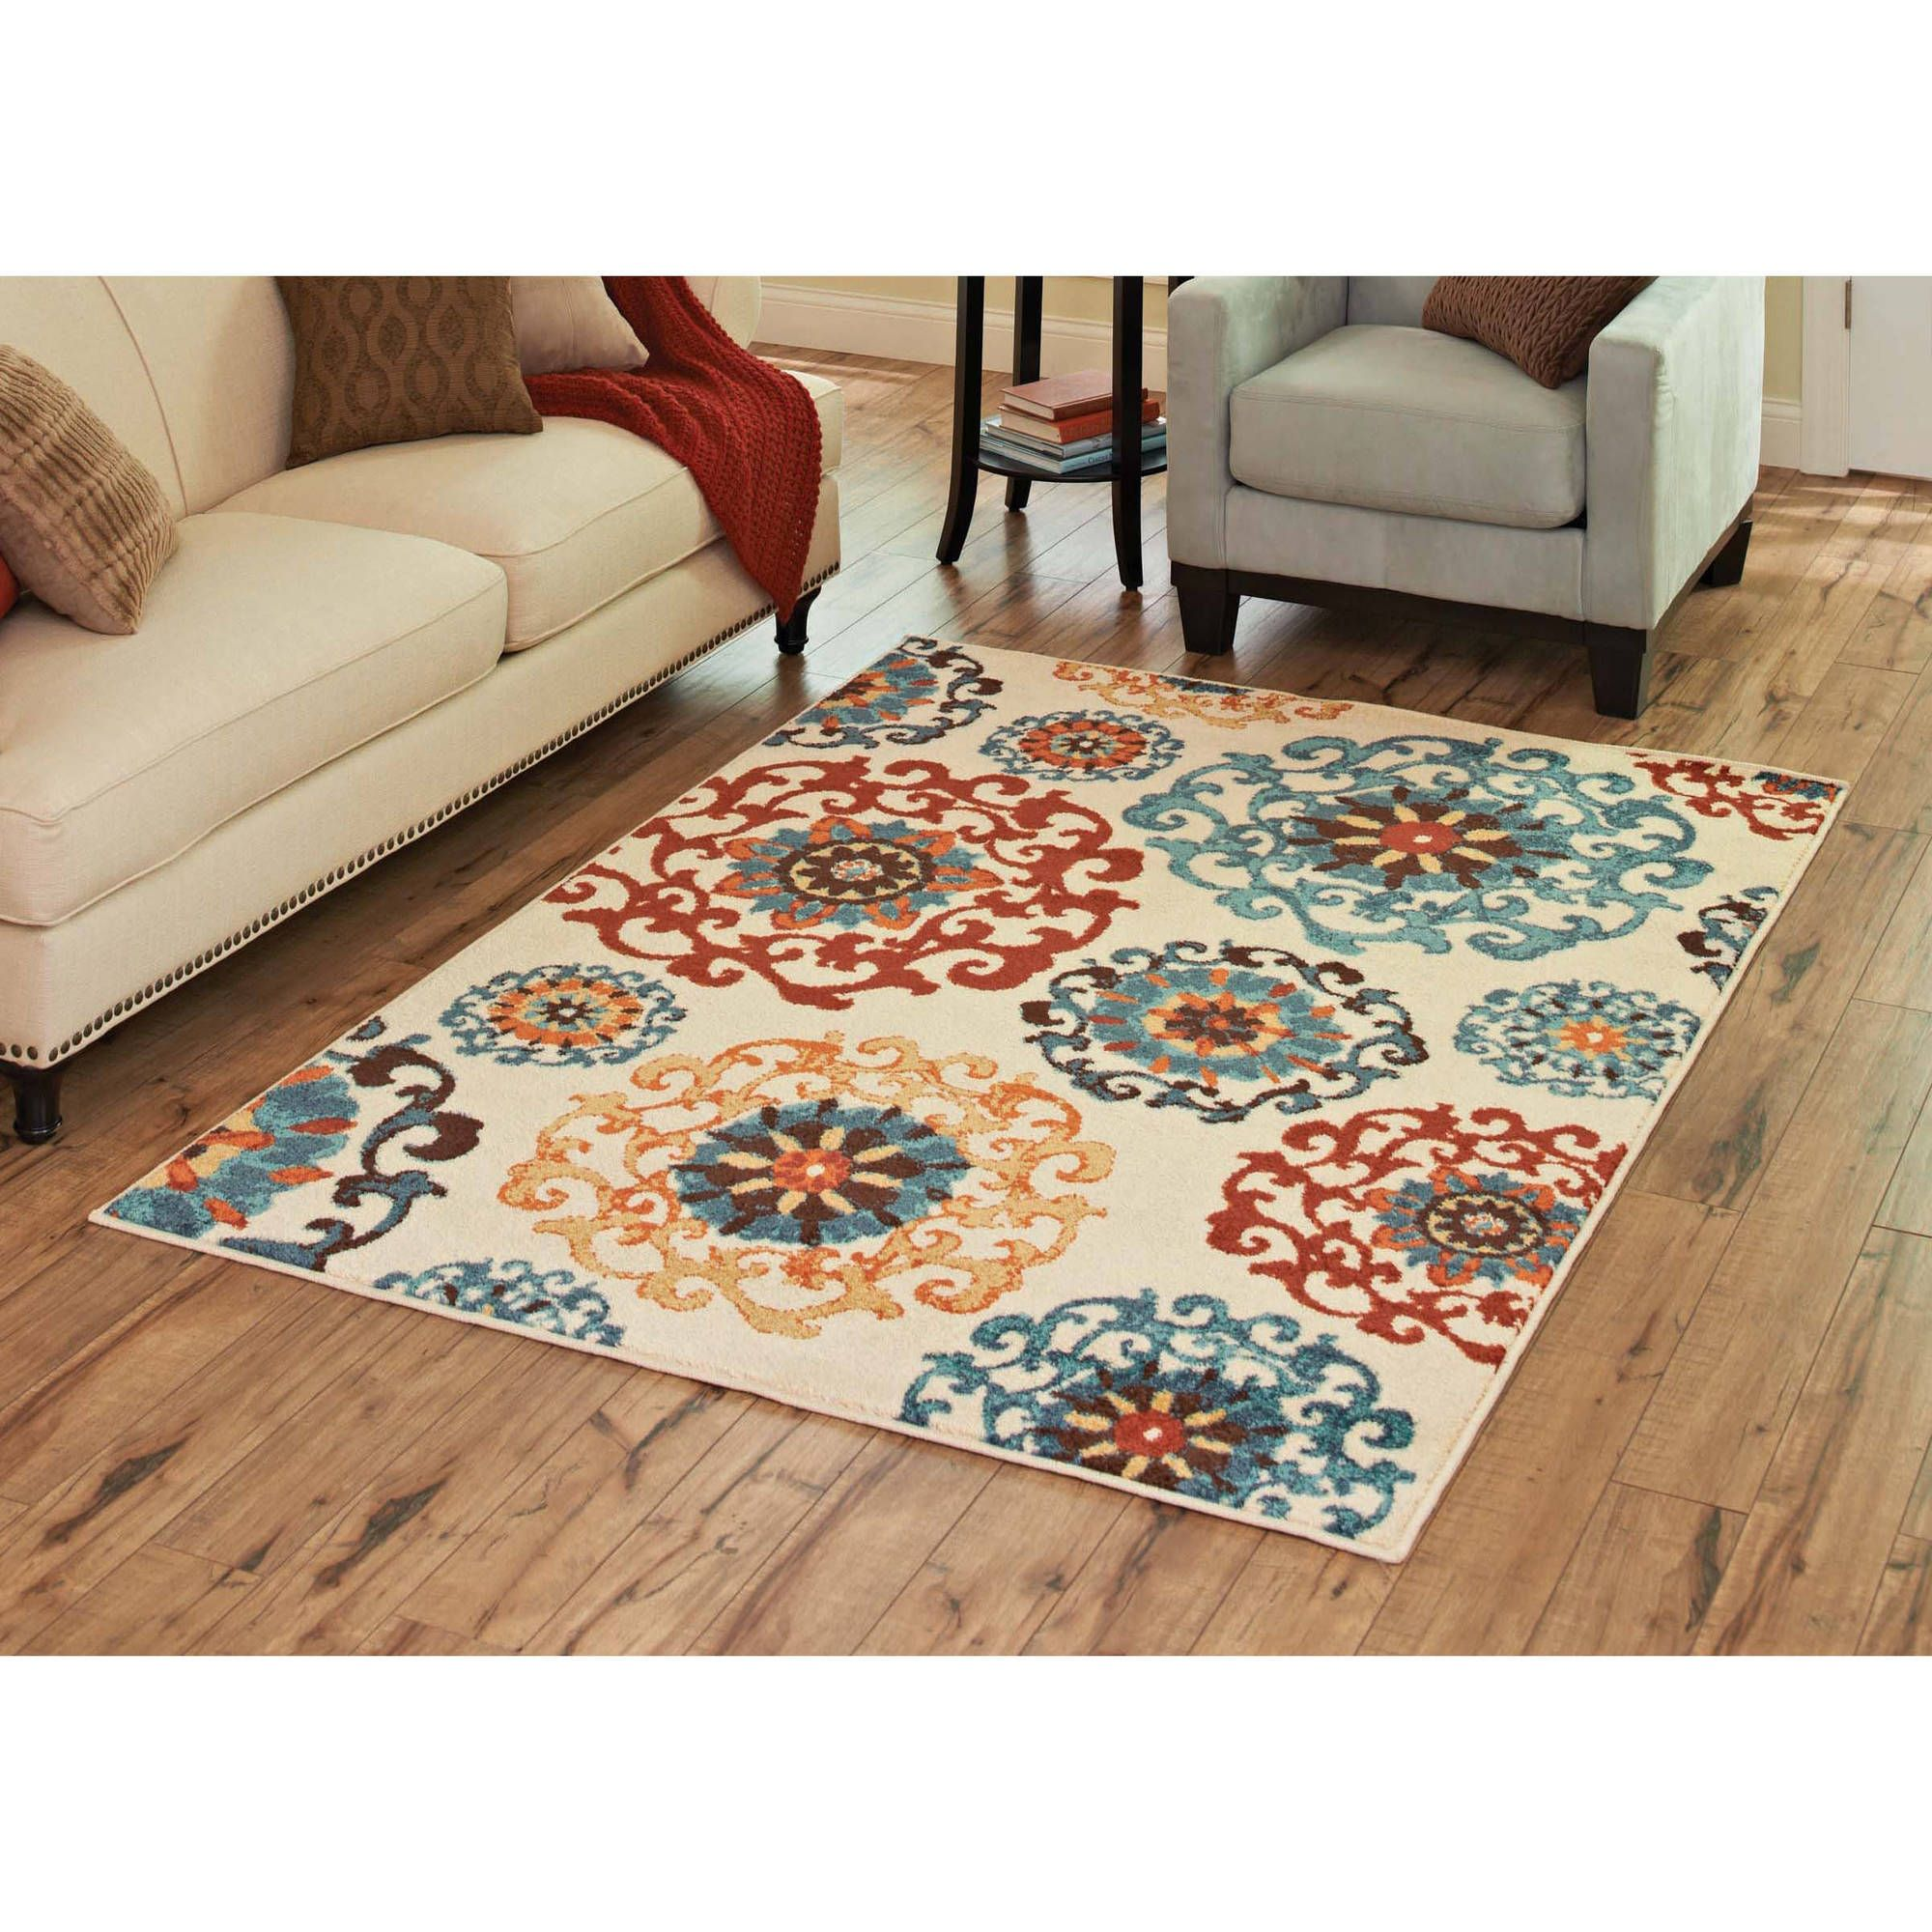 Home With Images Suzani Area Rug Suzani Rugs On Carpet